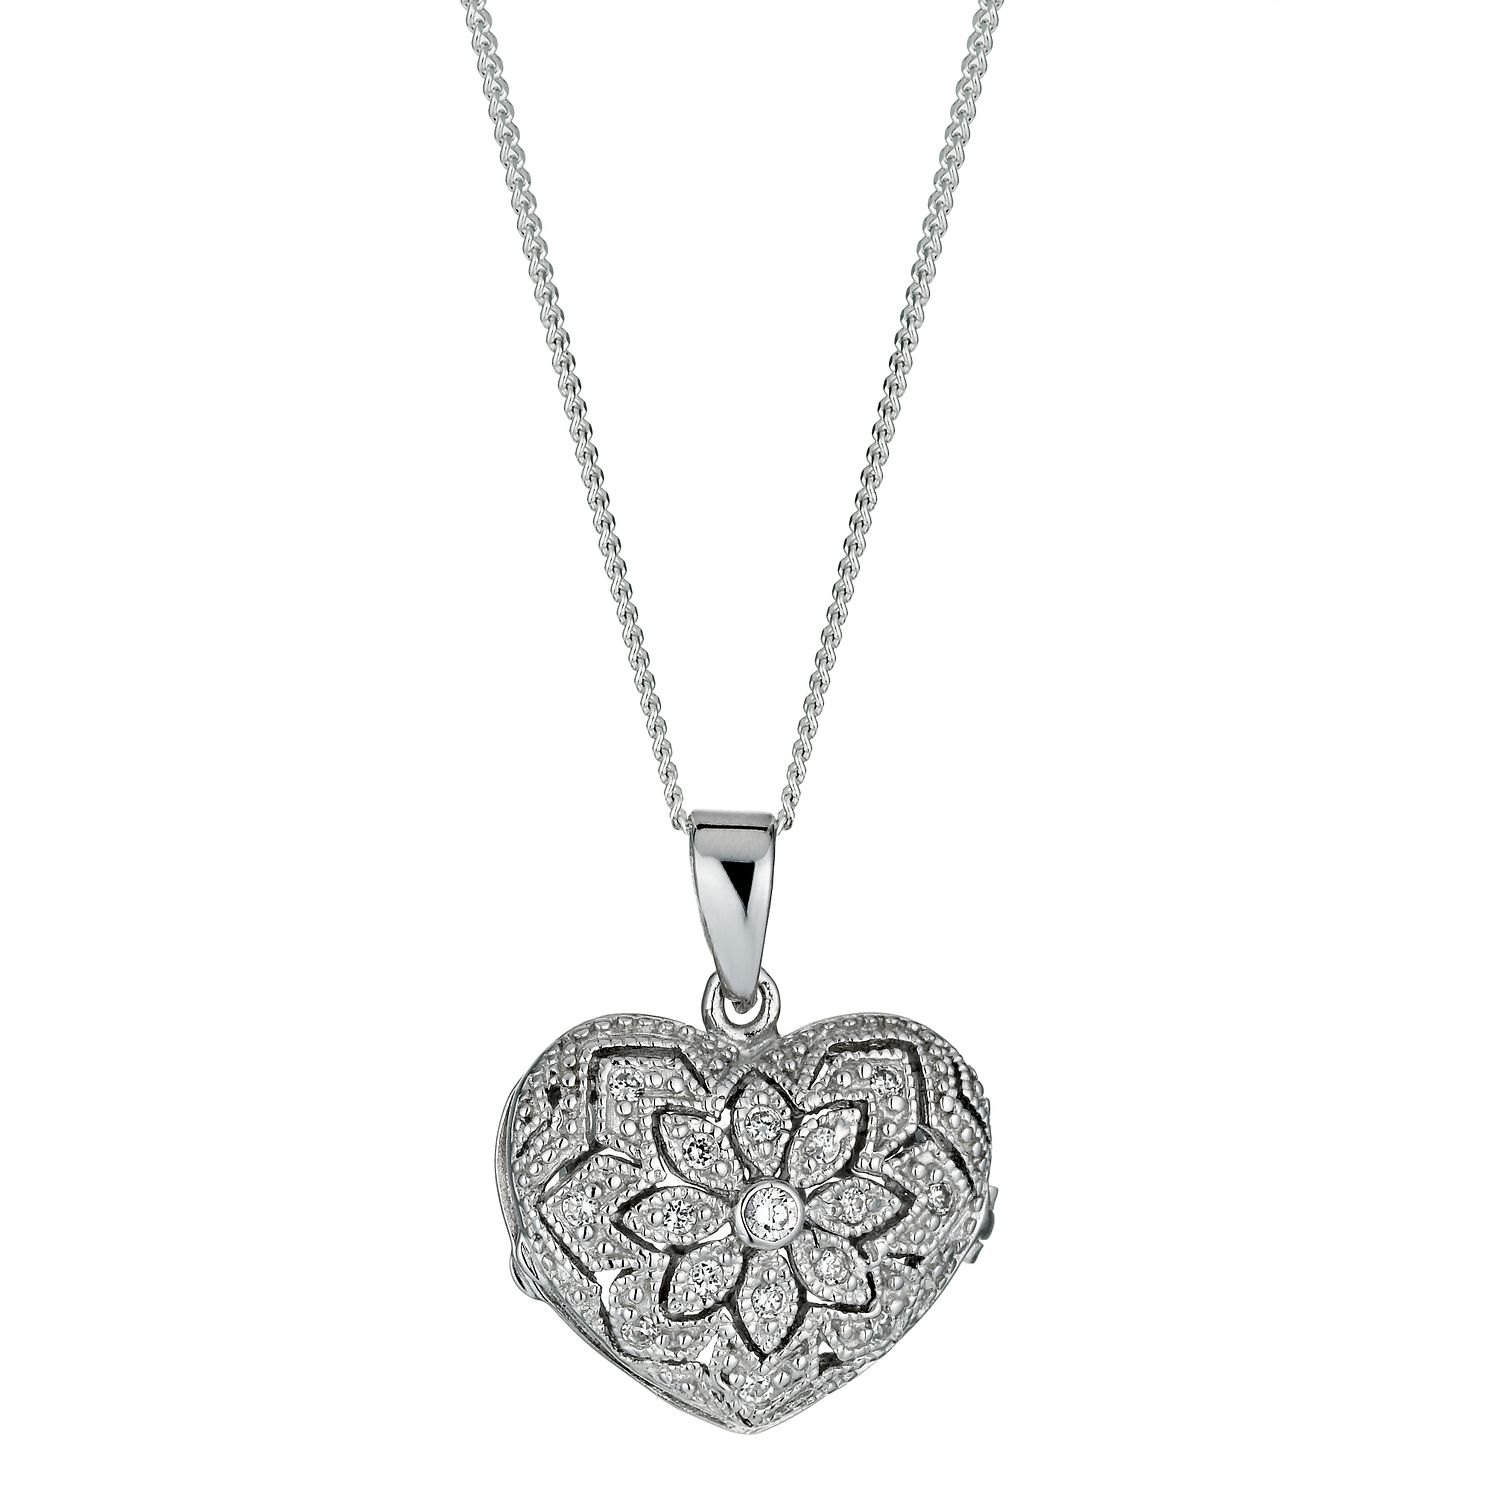 kay to zoom kaystore floral sterling lockets silver mv hover round locket en zm